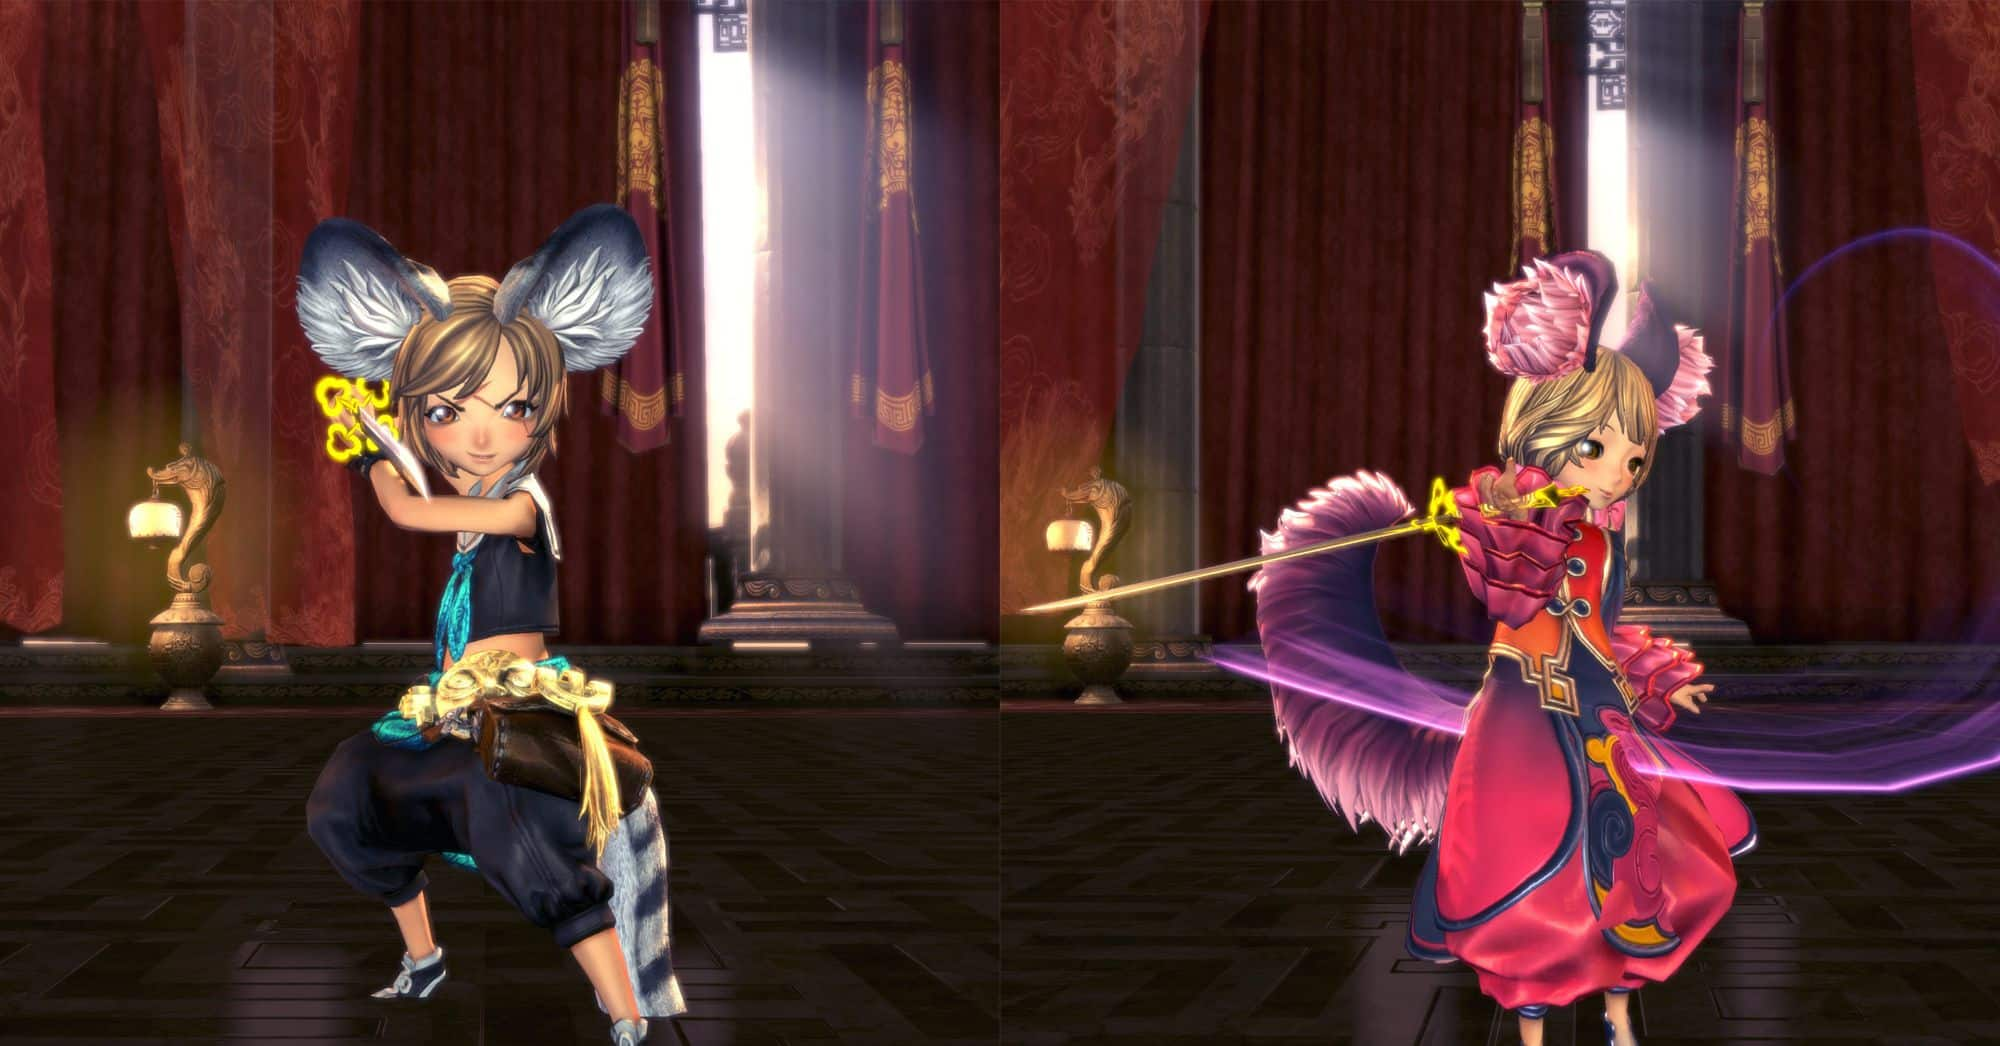 Summoner, Blade & Soul Class, Male Lyn & Female Lyn